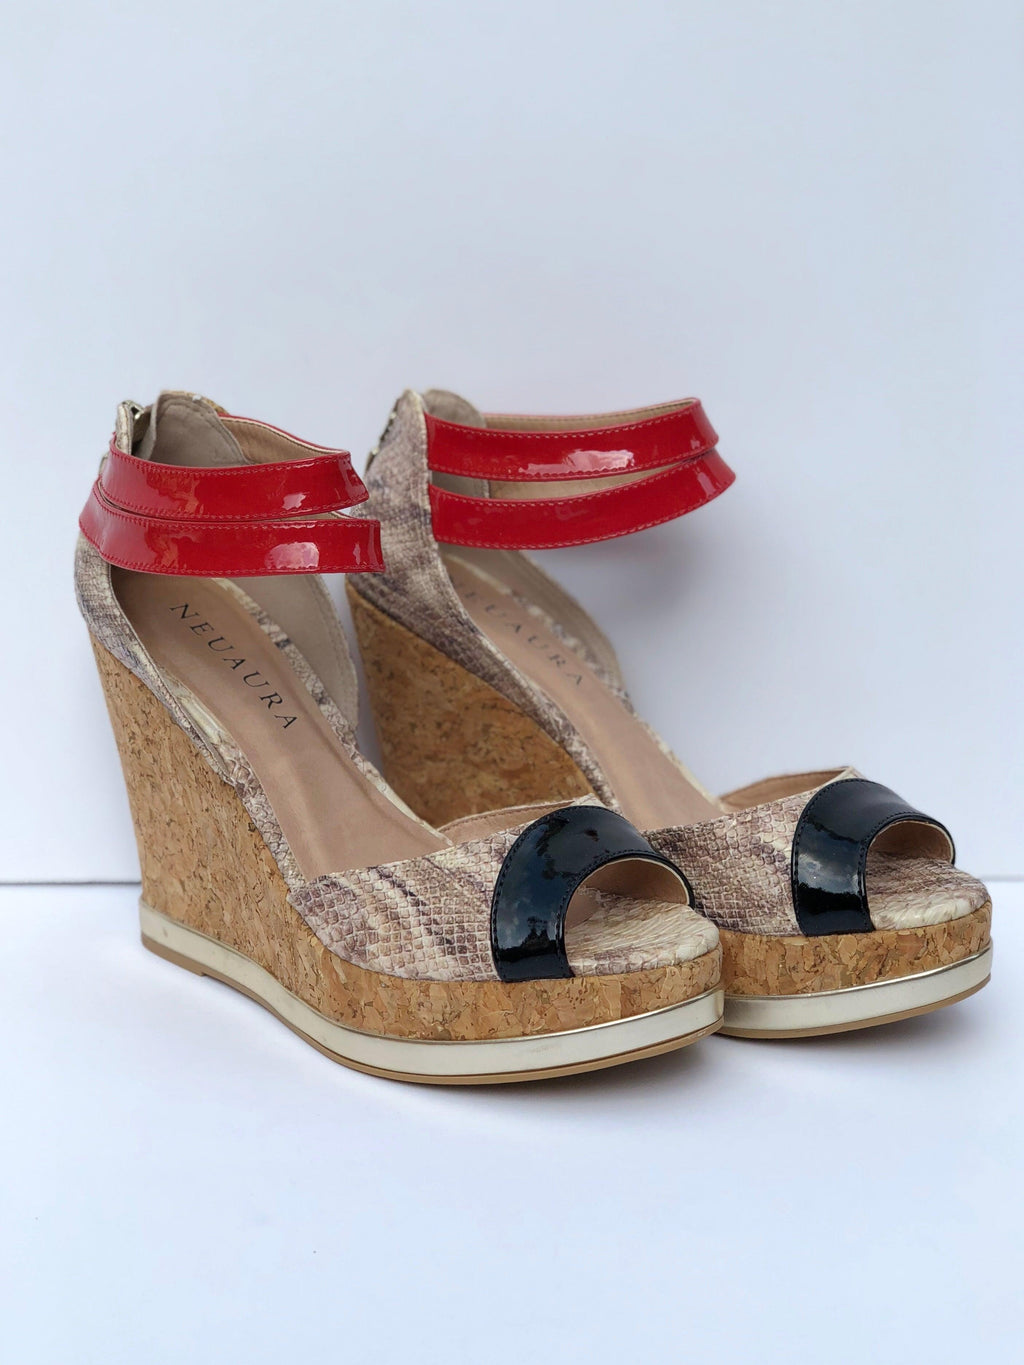 Black & Red Neuaura Wedges - My Royal Closet